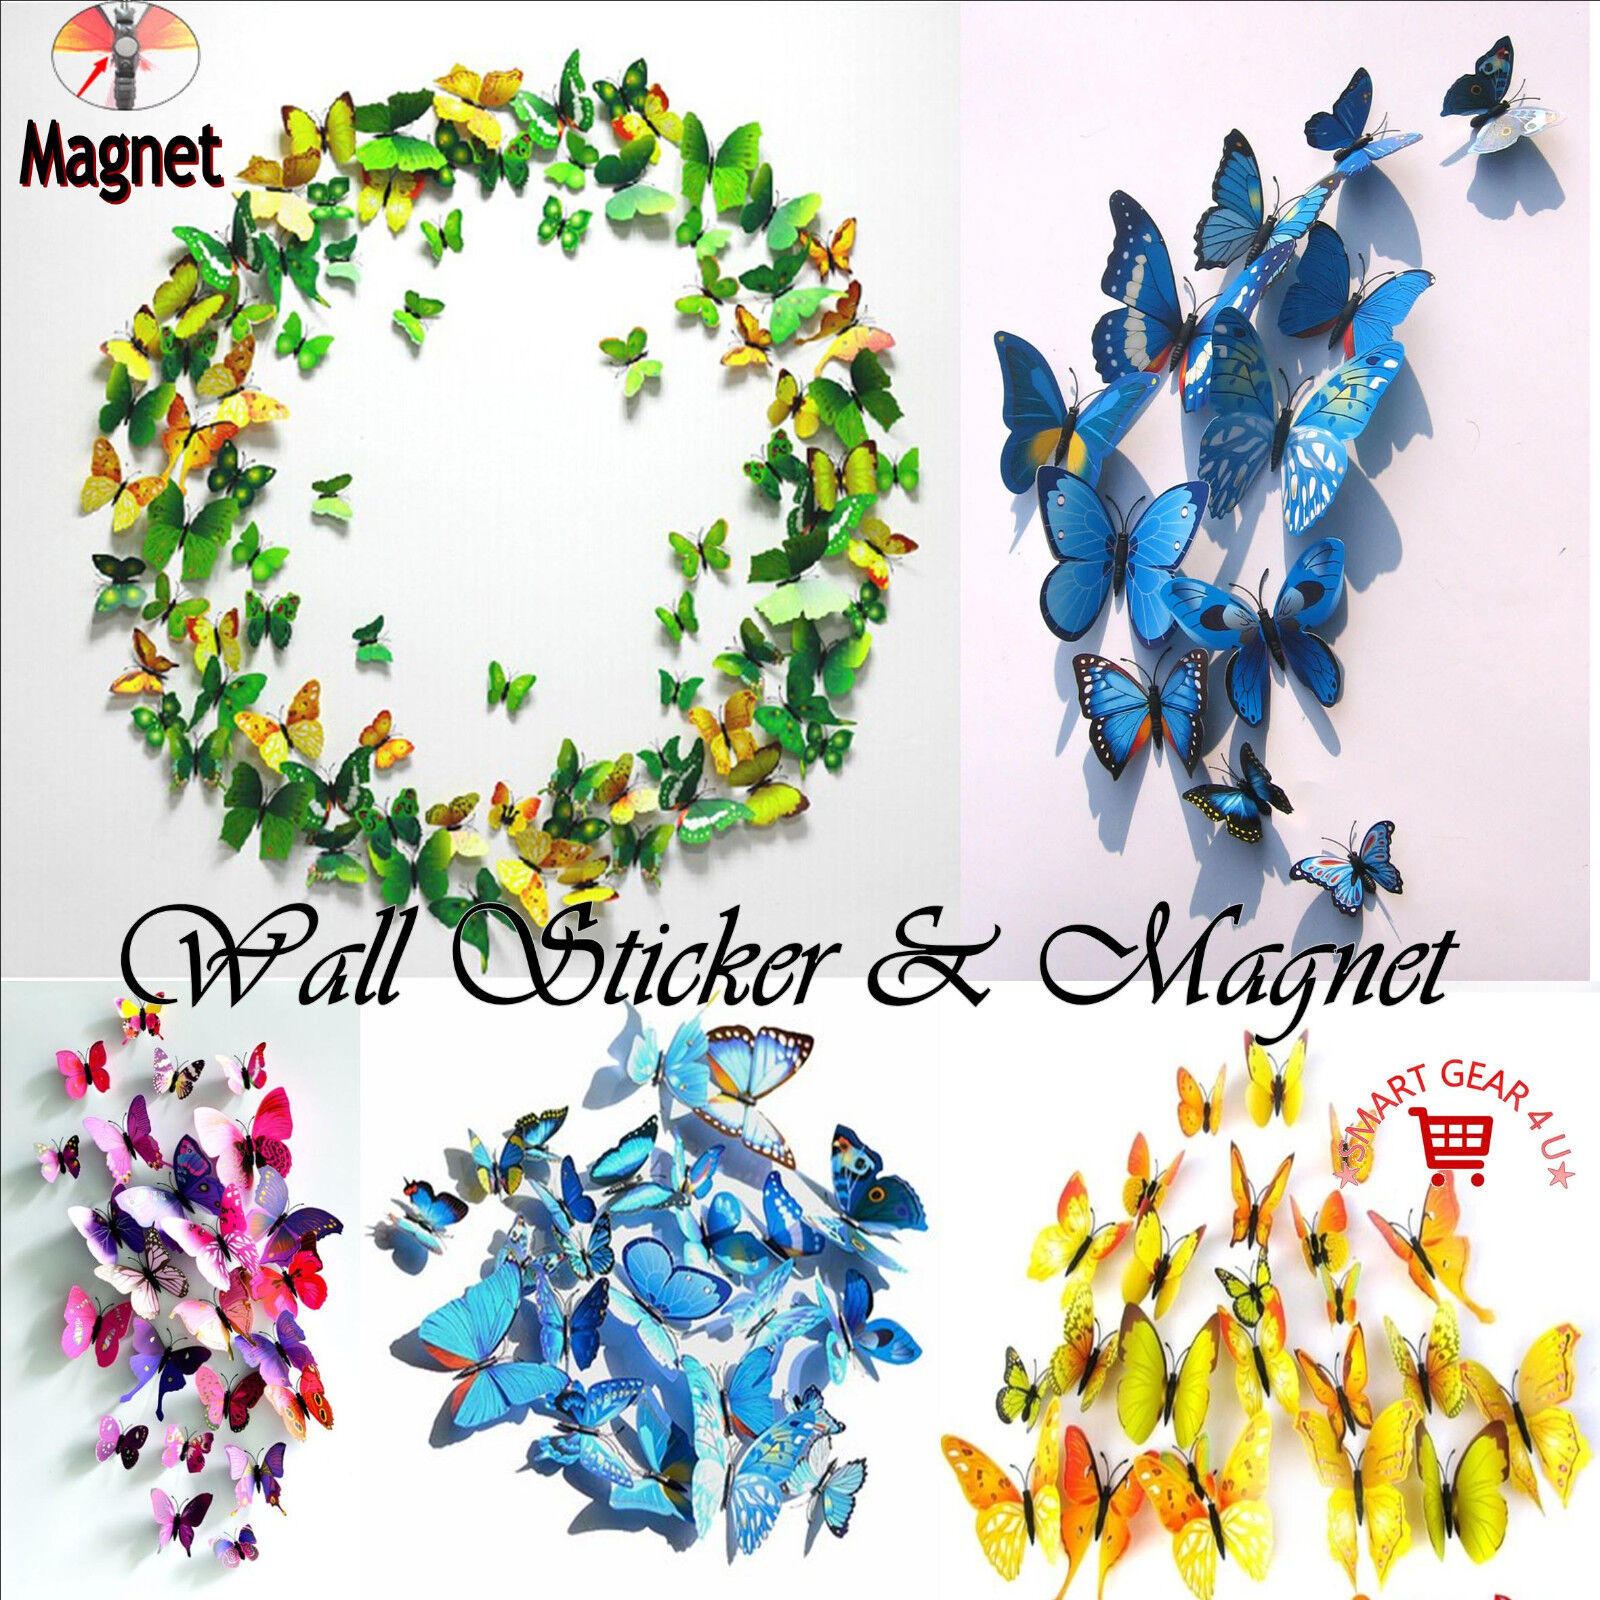 Home Decoration - 3D Butterfly Wall Stickers Magnet Art Decal Home Room Decorations Decor 12 & 24